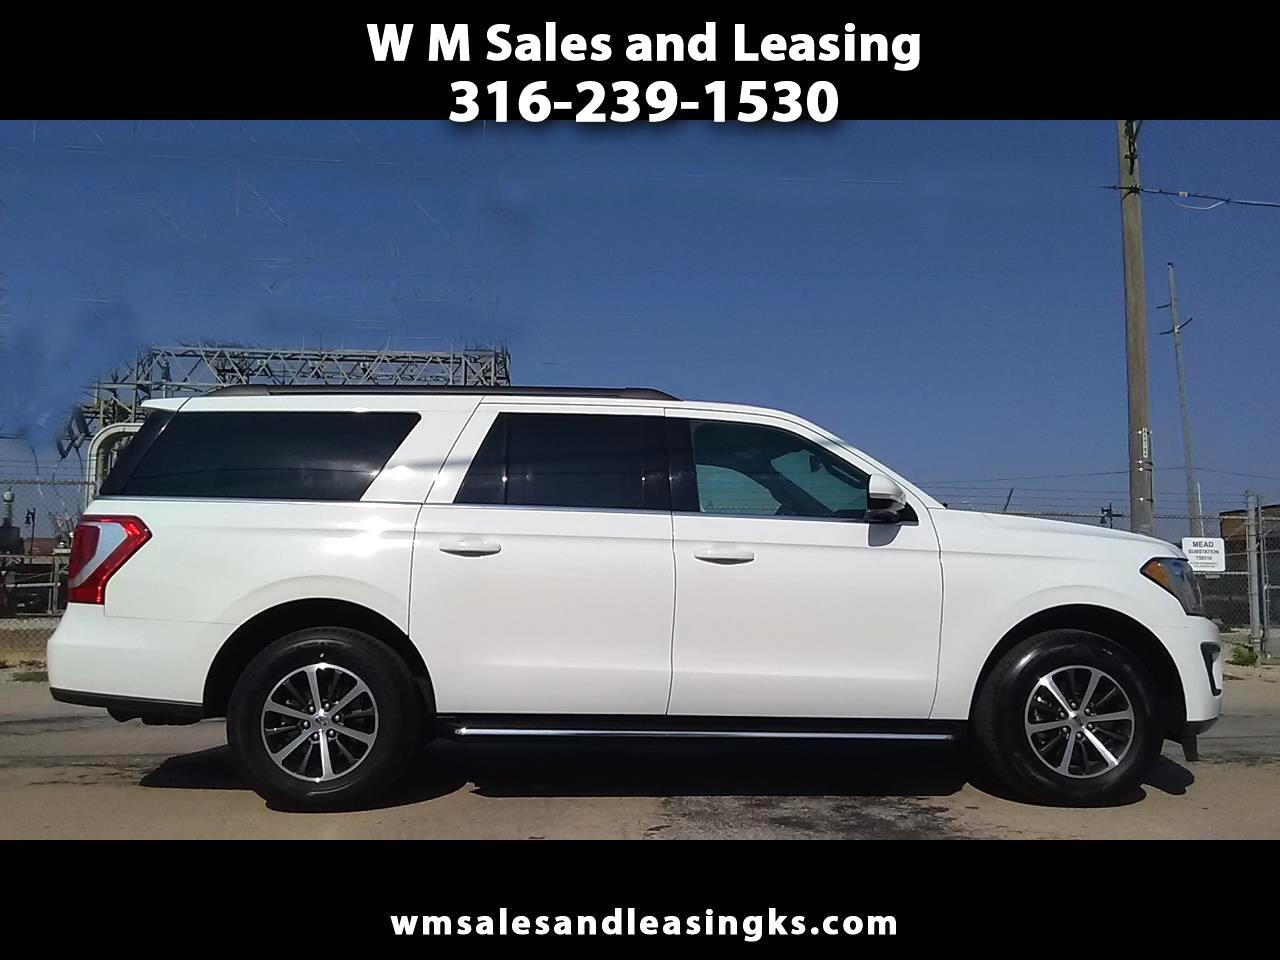 used cars wichita ks used cars trucks ks w m sales and leasing used cars wichita ks used cars